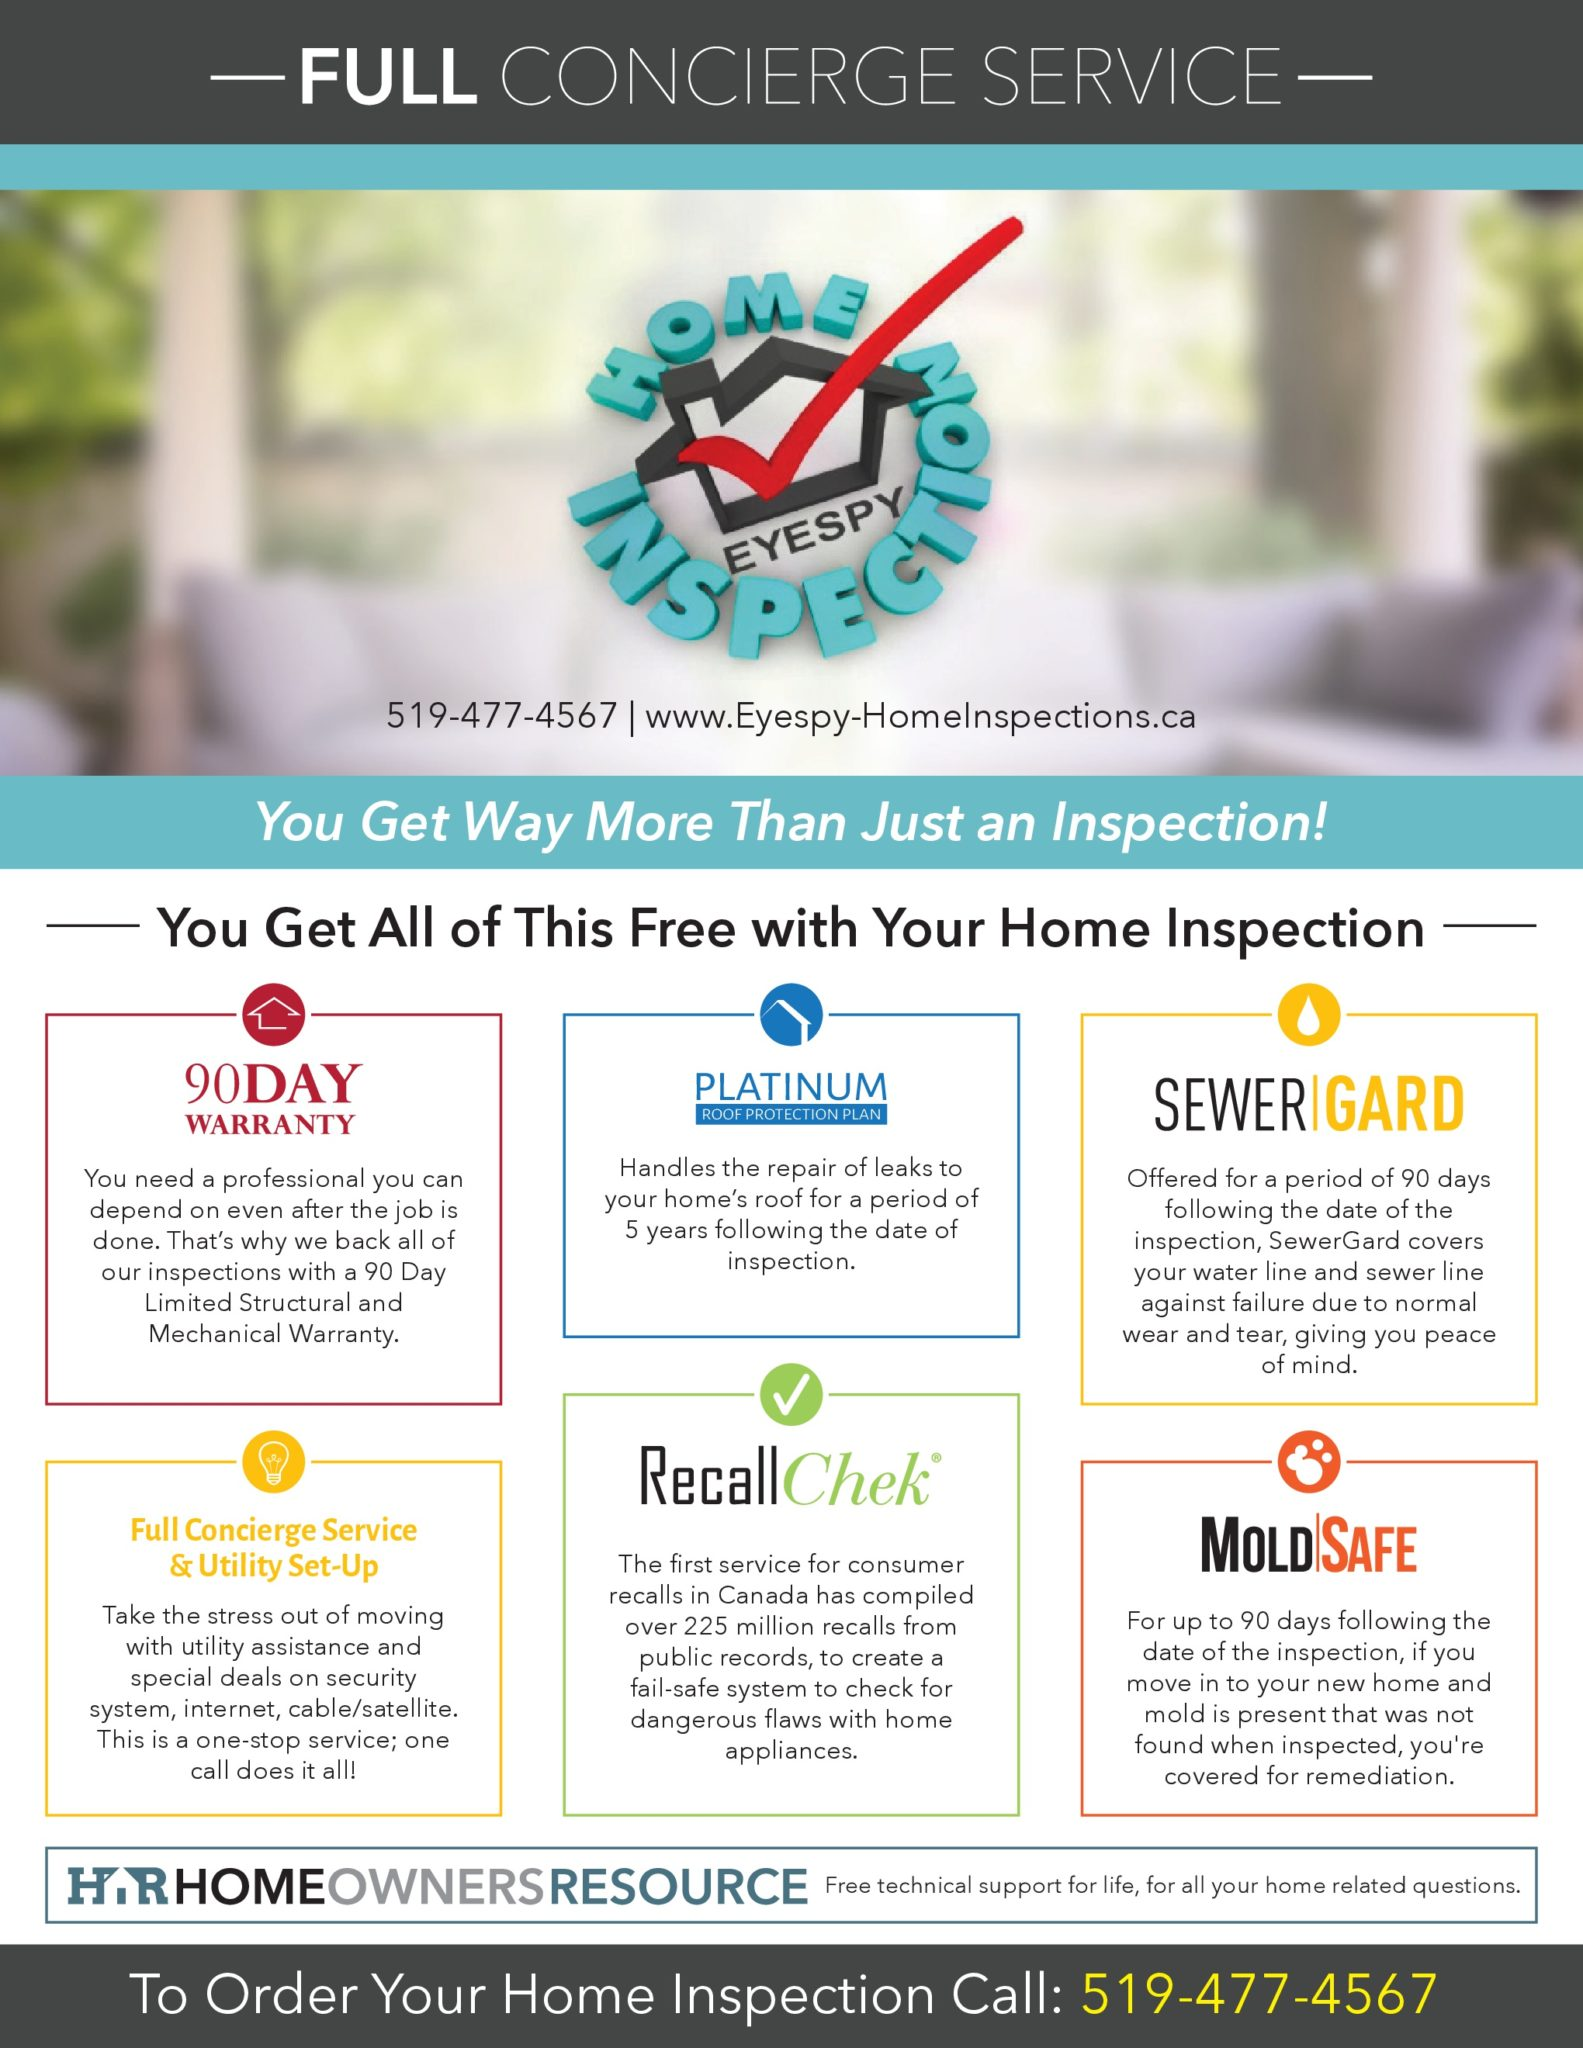 Eyespy Home Inspections - Home Page